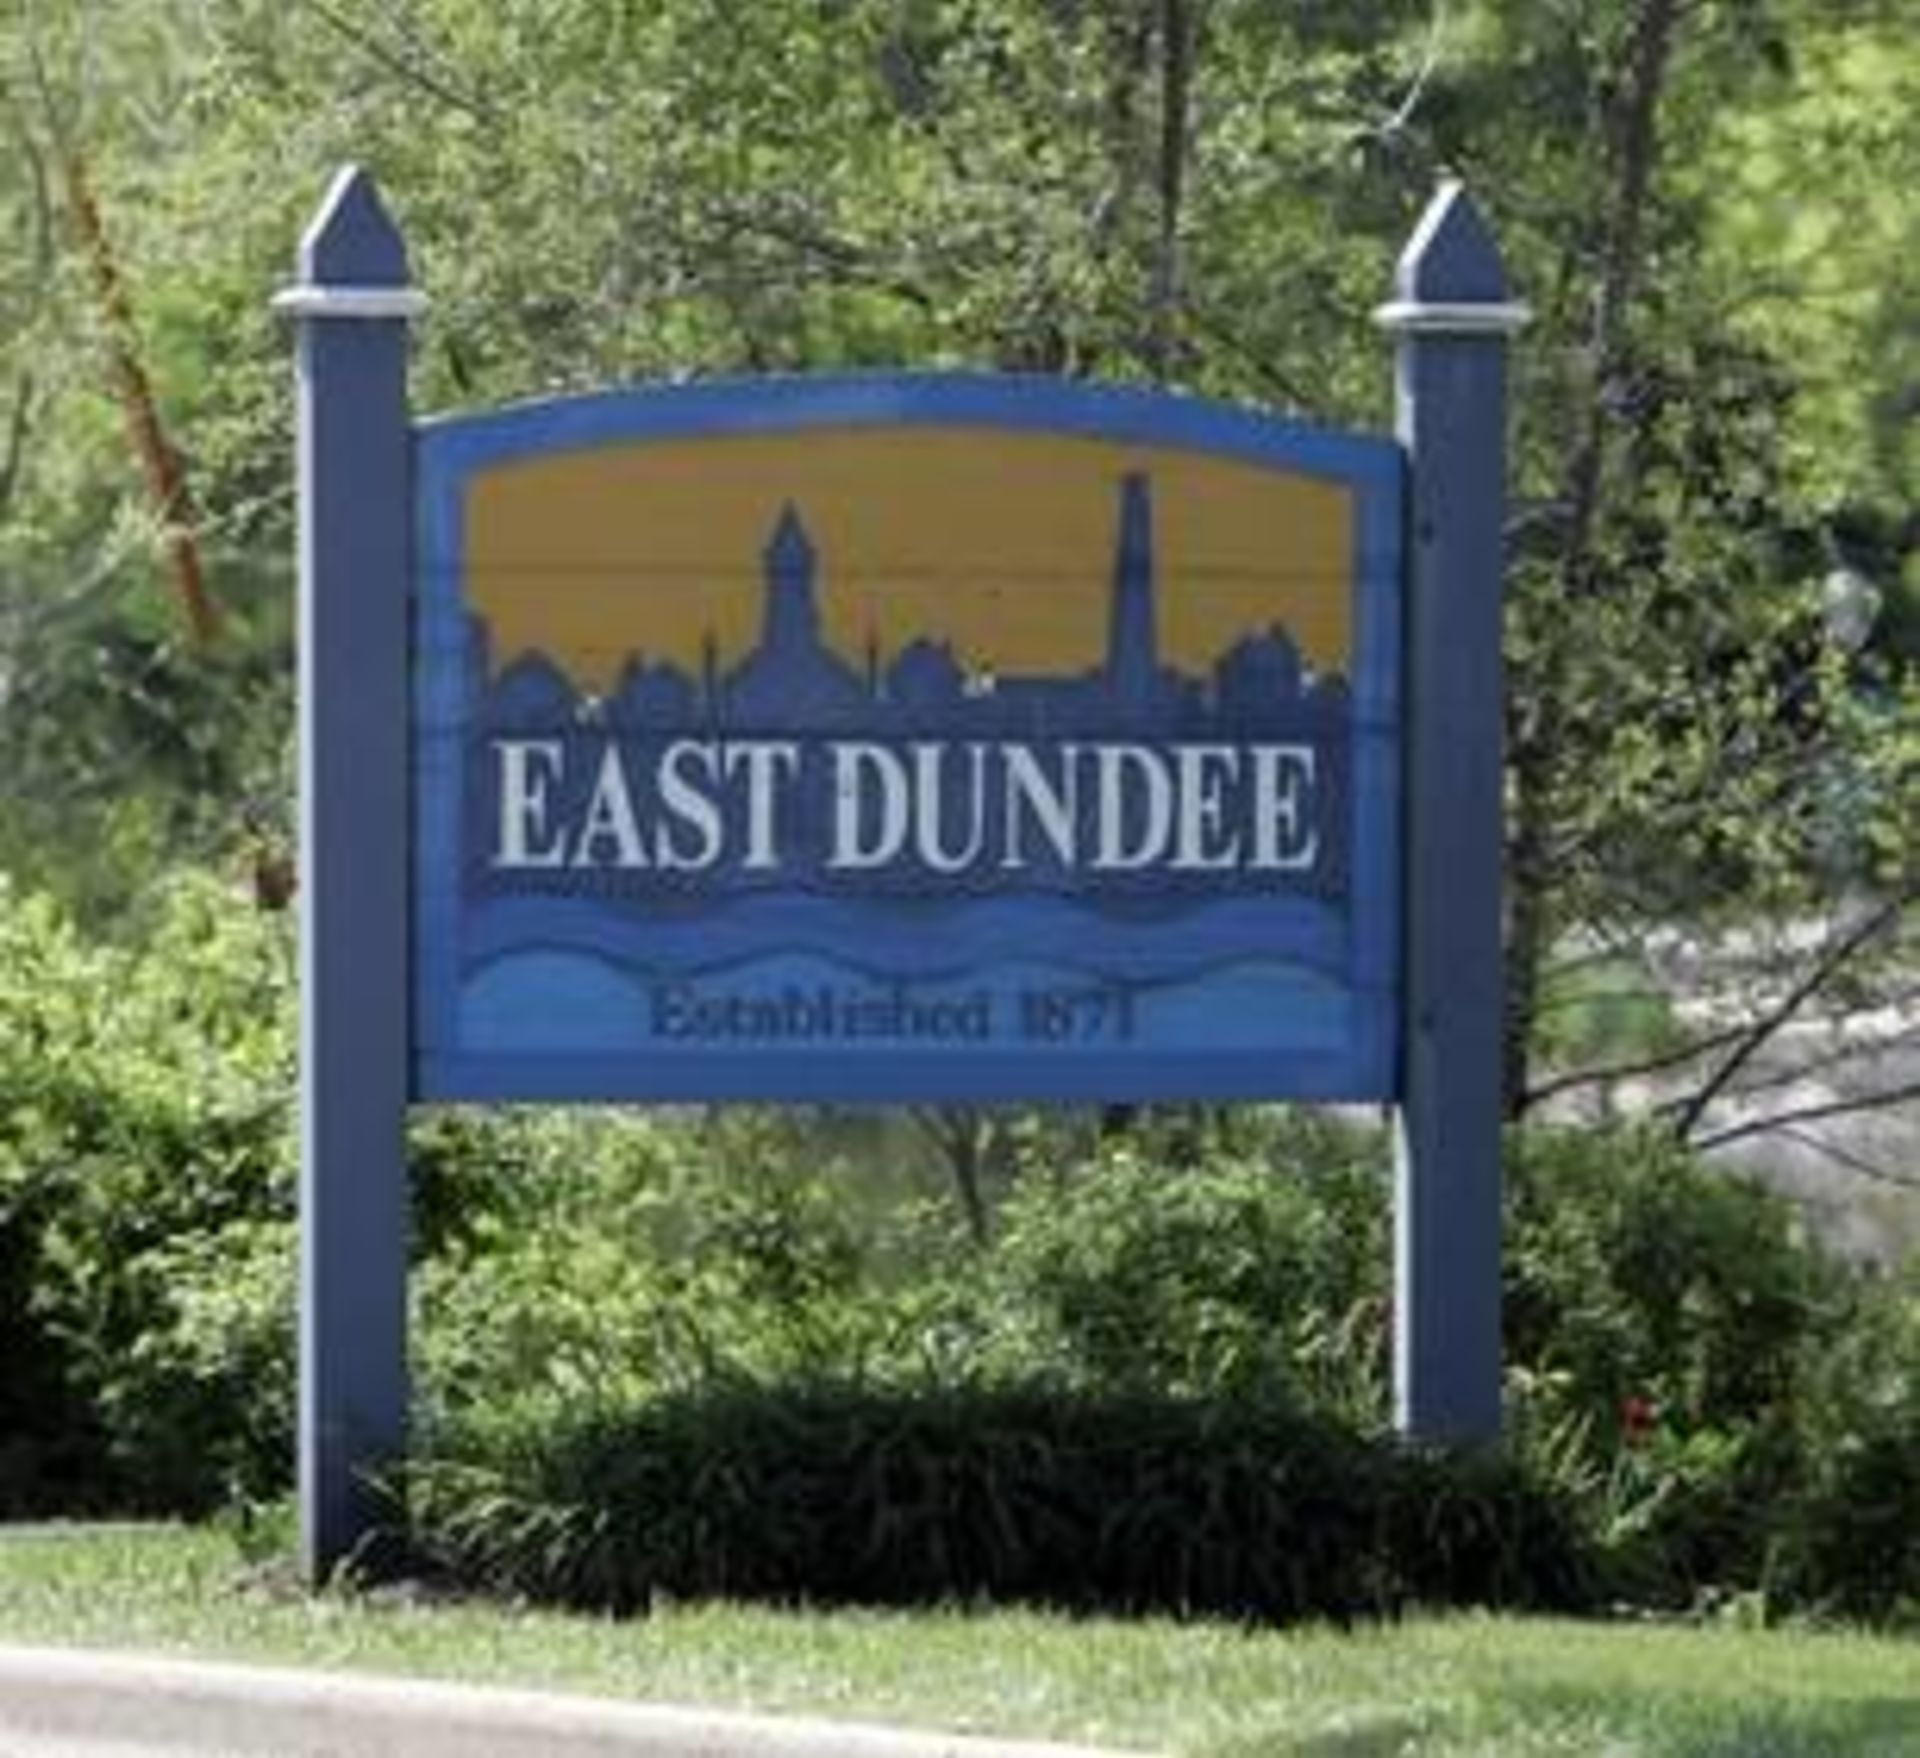 East Dundee